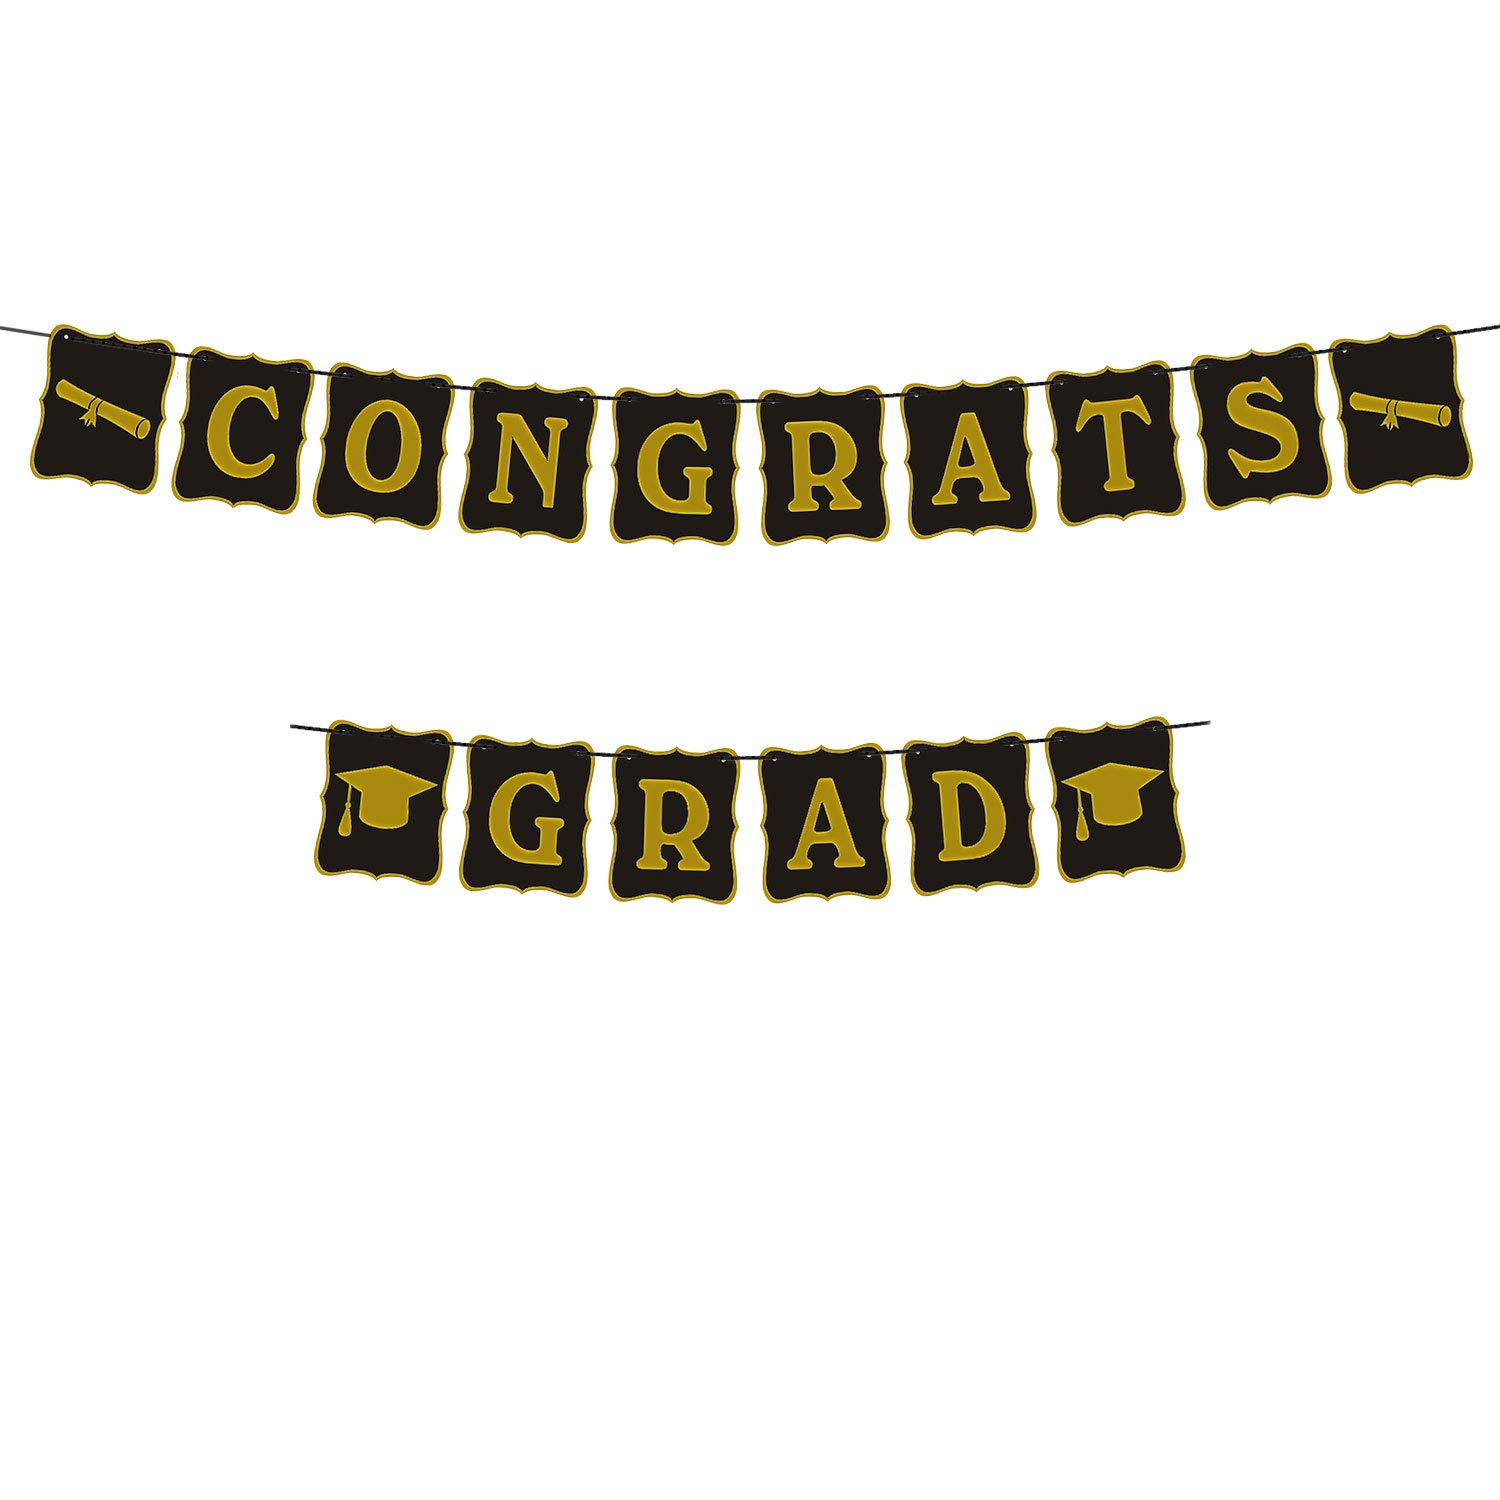 Graduation Party Supplies 2019 Graduation Party Decorations Graduation Banner Congratulations Banner Hang Swirls and Black & Red 2019 Balloons by Brillex (Image #2)